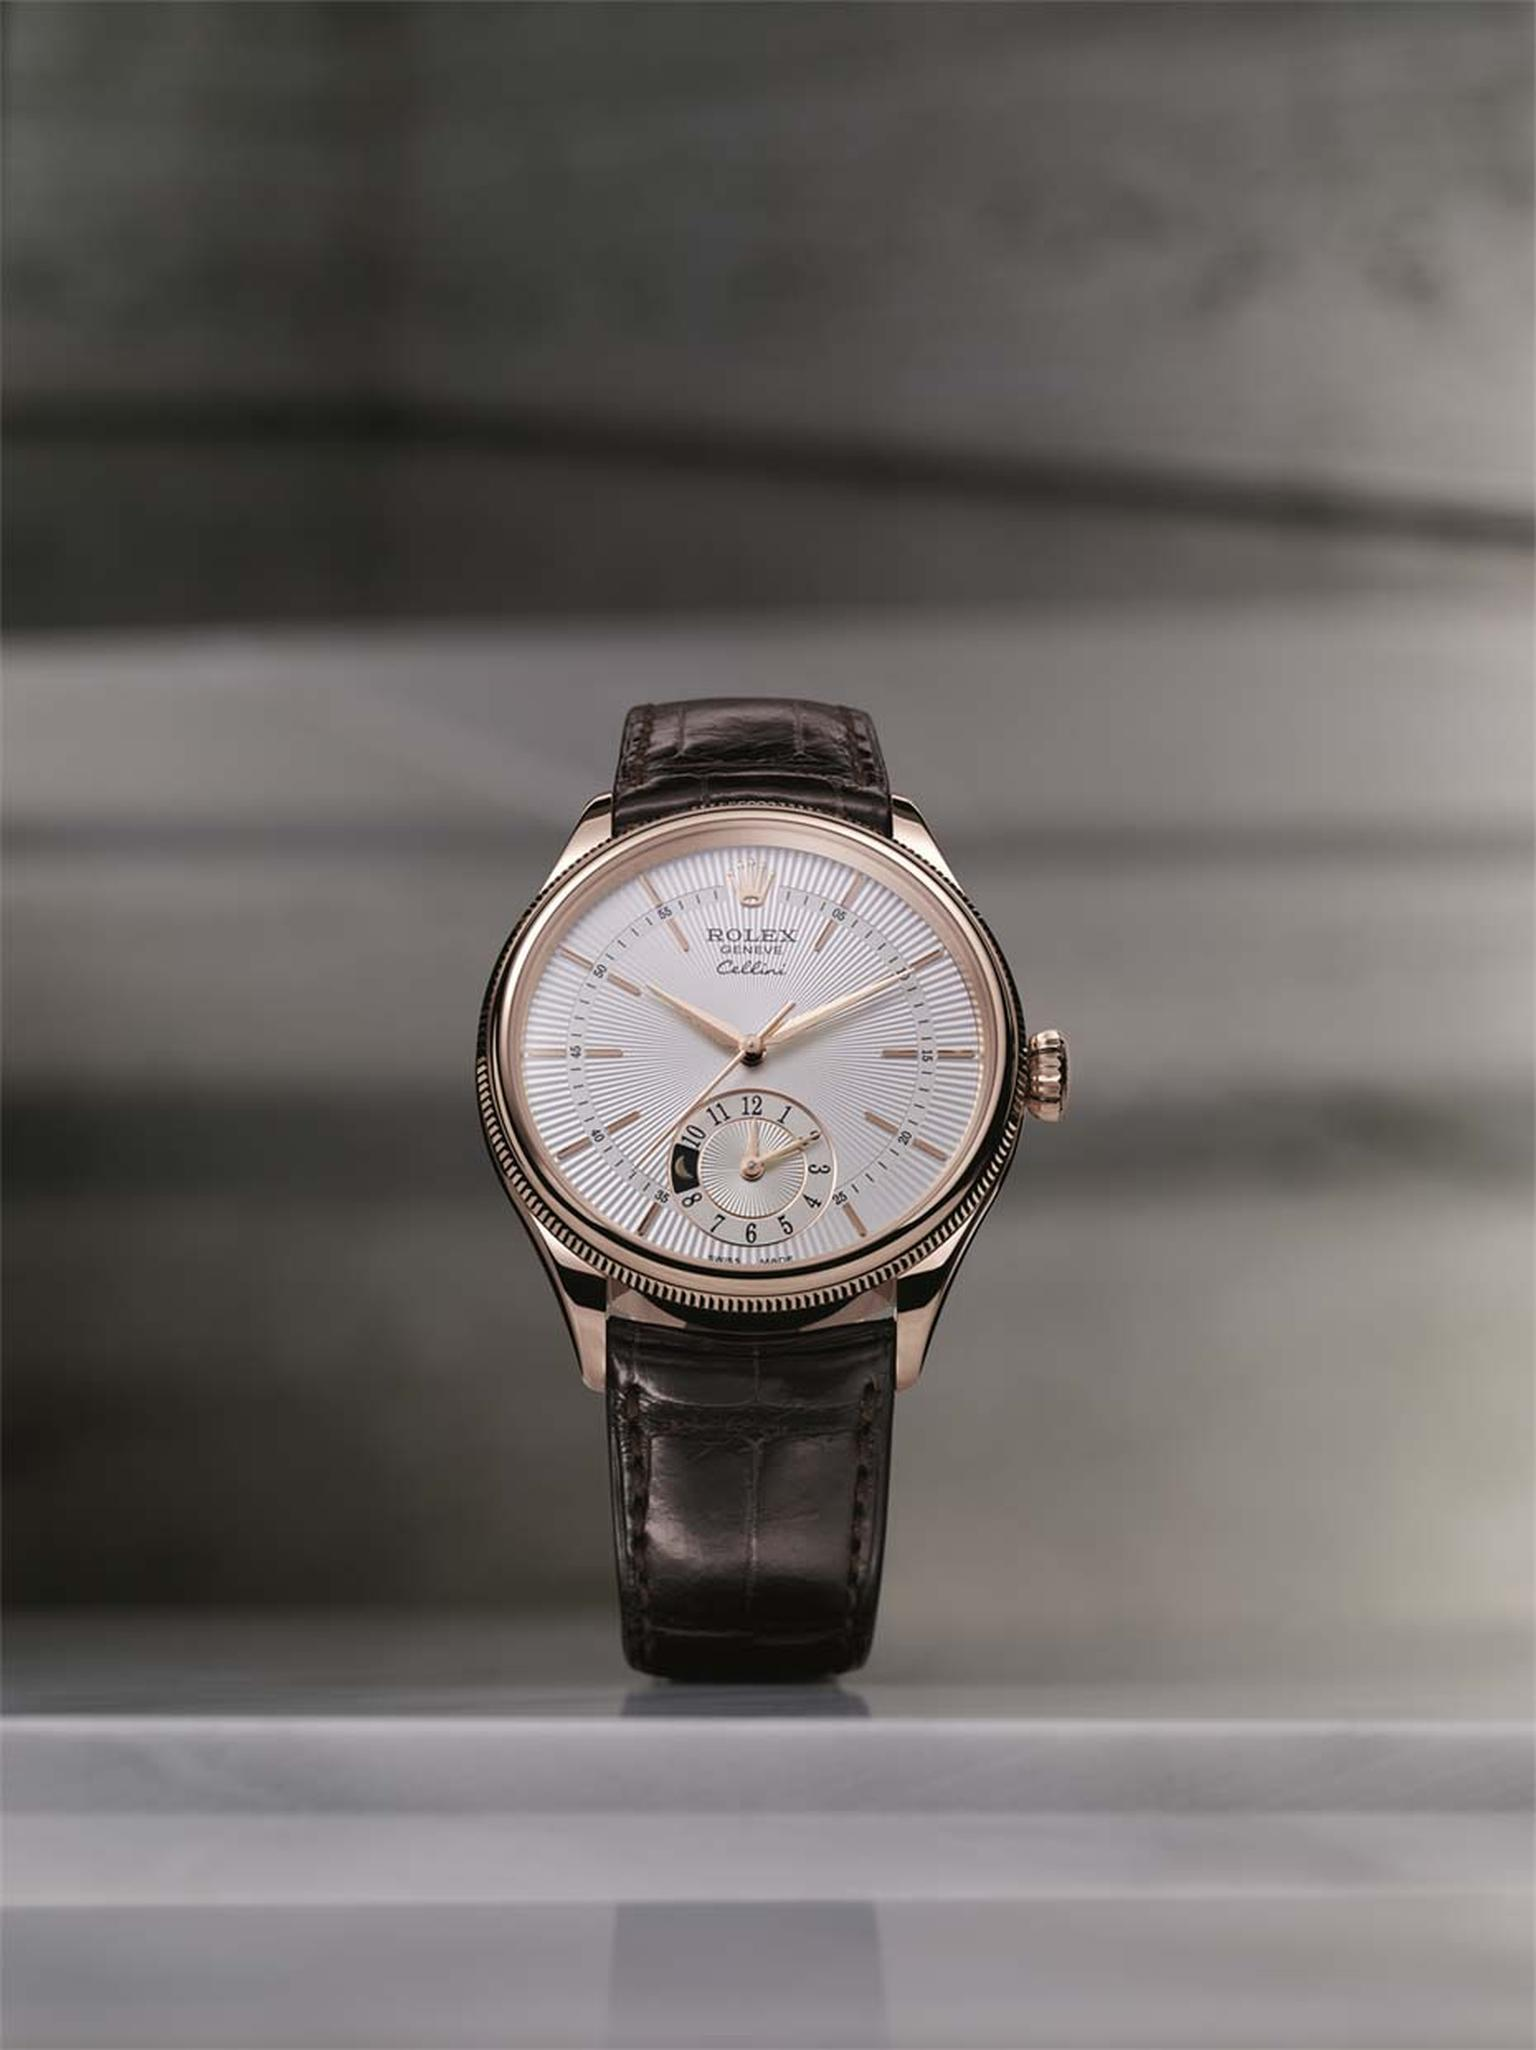 The Rolex Cellini Dual Time indicates the time in two time zones, with a 'sun and moon' day/night indicator at 6 o'clock